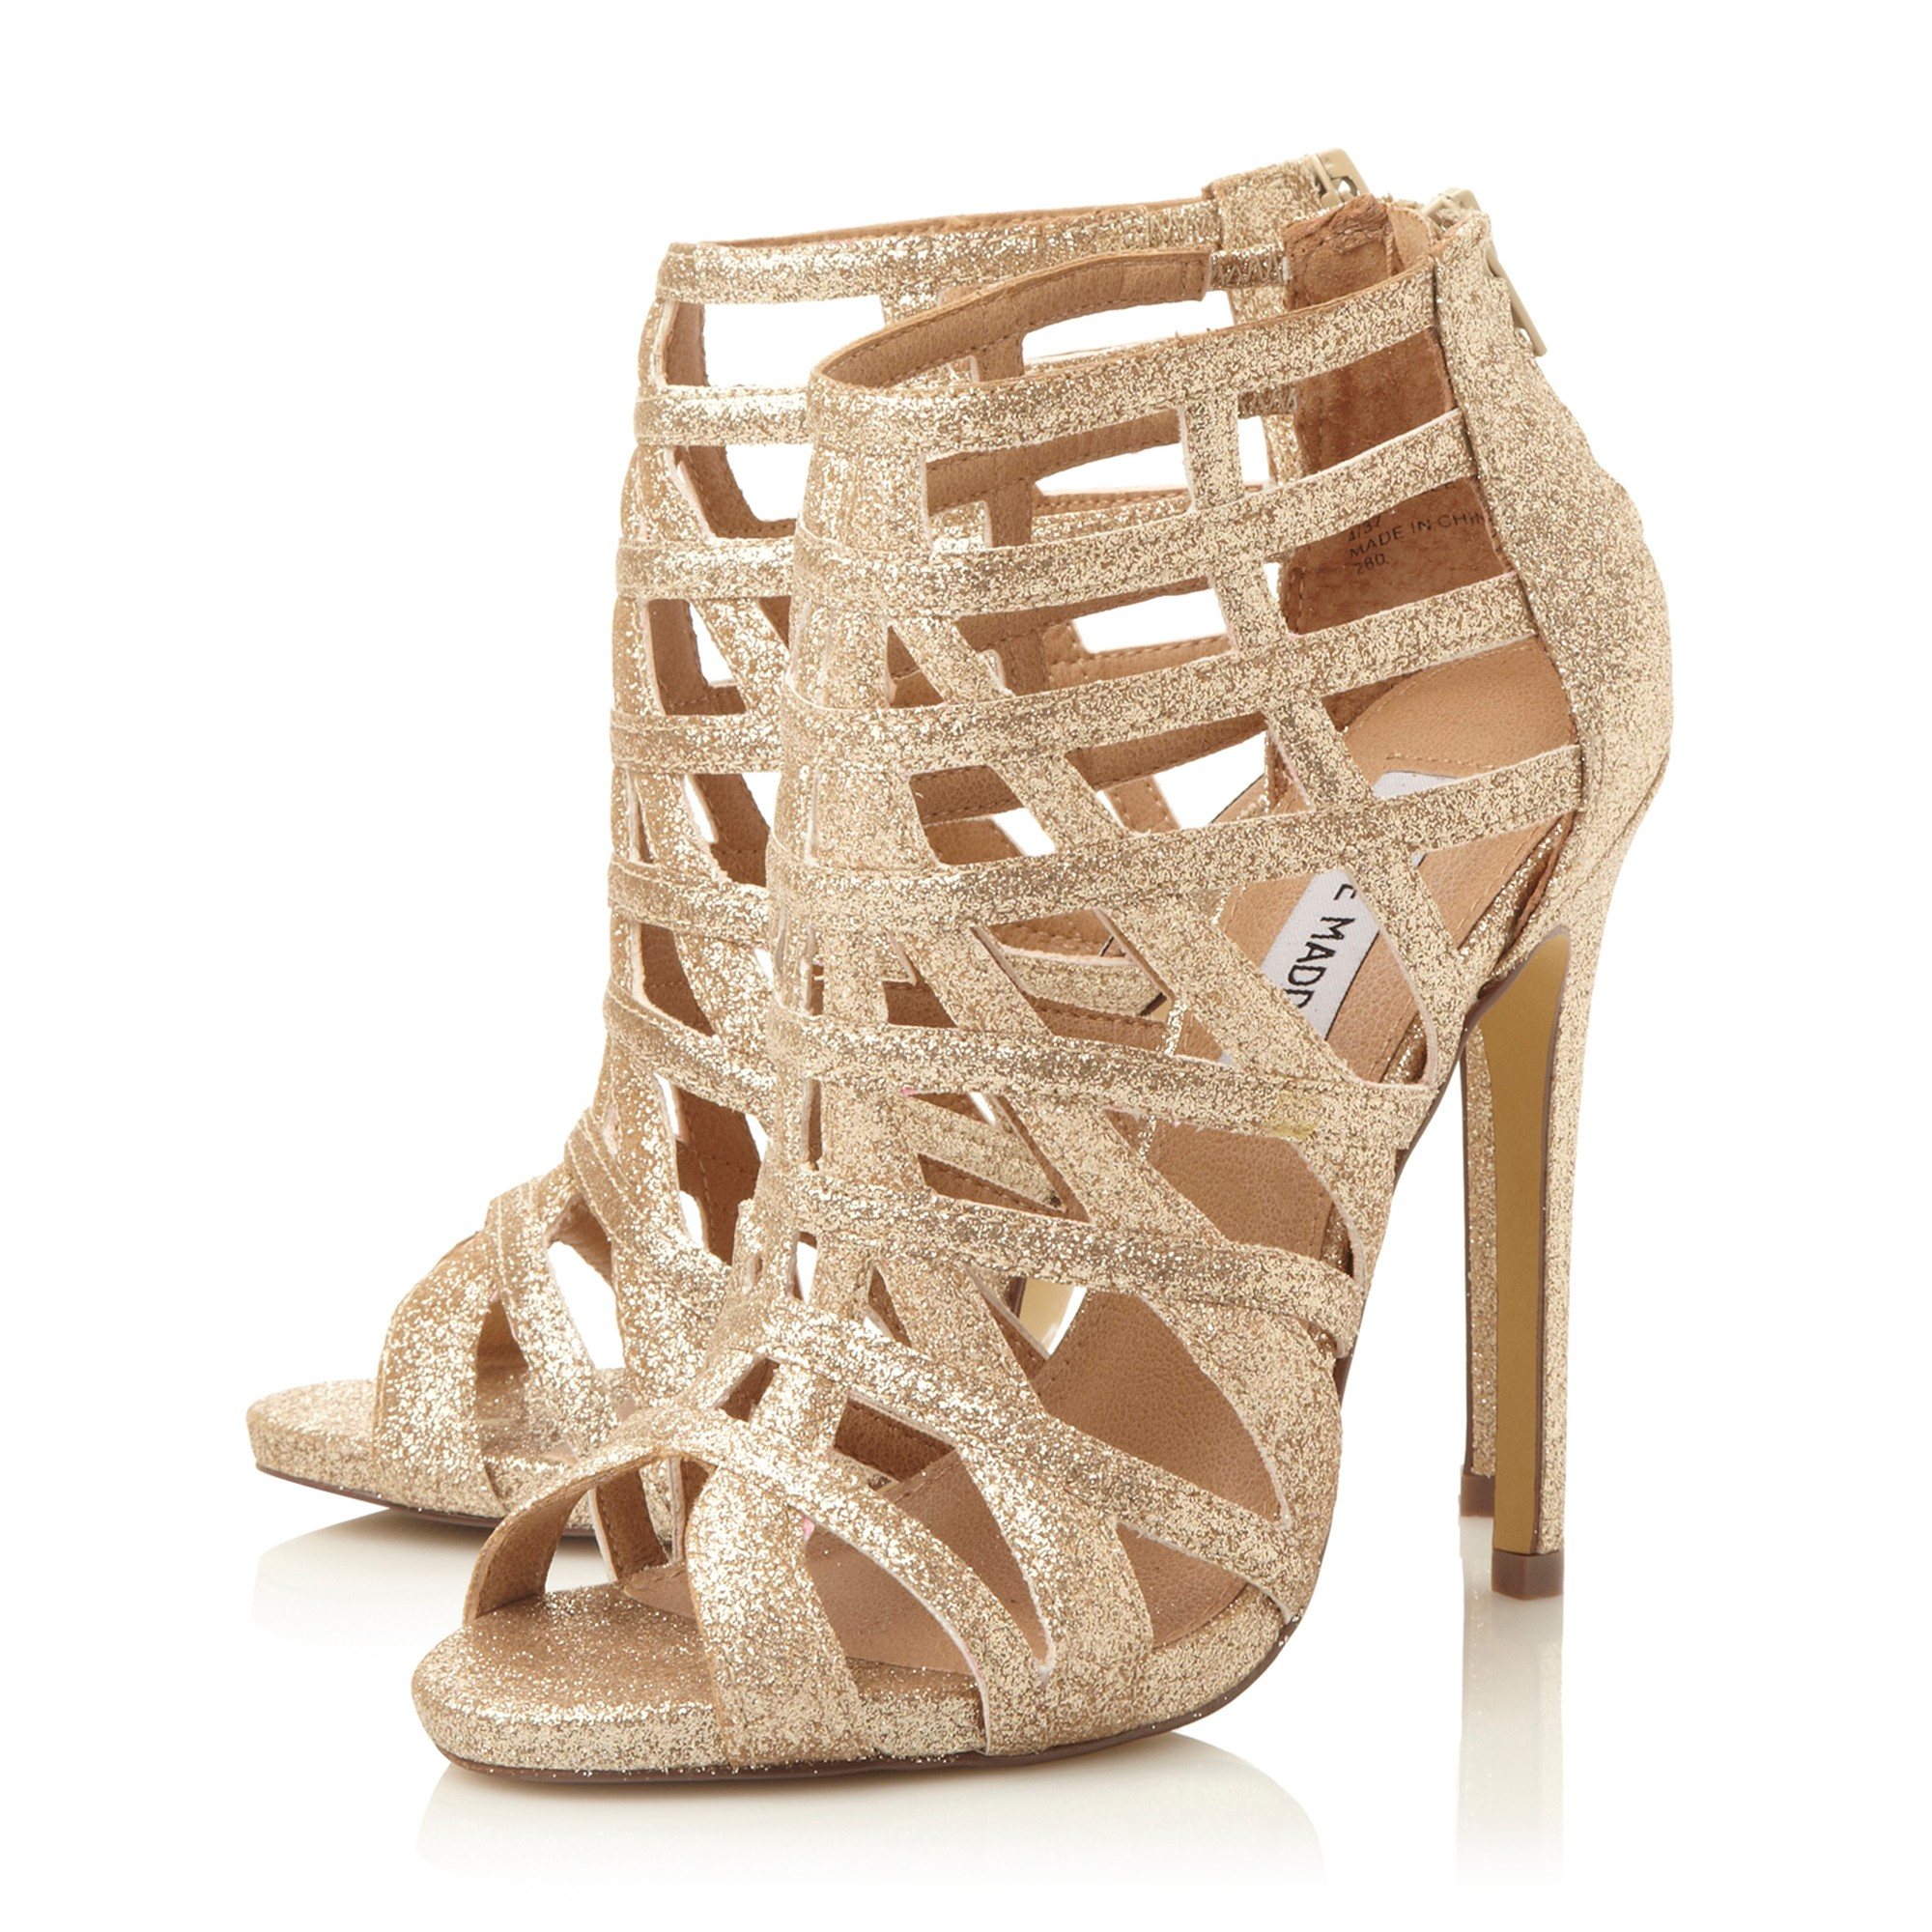 f5f6736d94a Steve Madden Marquee Caged High Heel Sandal in Metallic - Lyst